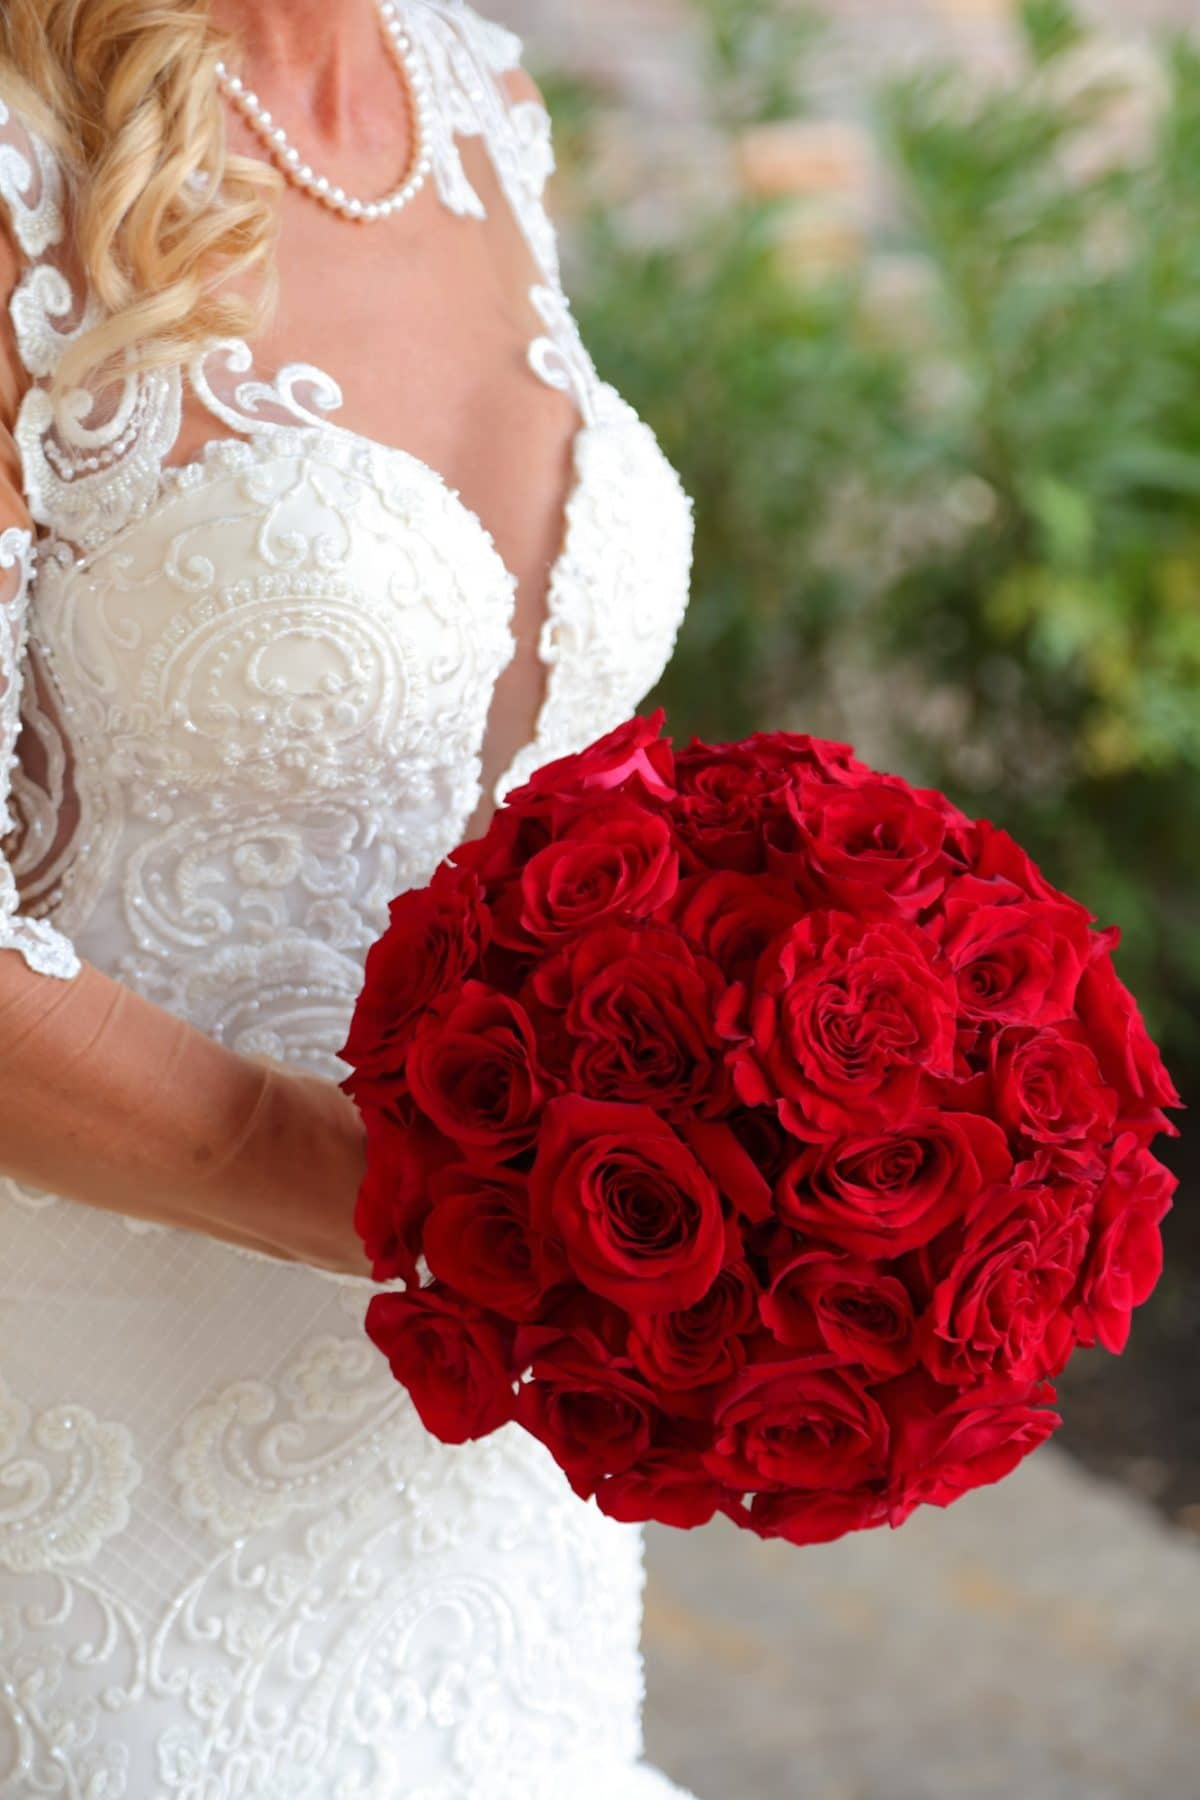 Naama and Anat Haute Couture, red rose inspired wedding, classic, red and white, Naama and Anat Bridal, wedding dress, bridal couture, couture bridal, bridal designer, wedding gown, real wedding, bride, bridal bouquet, red roses